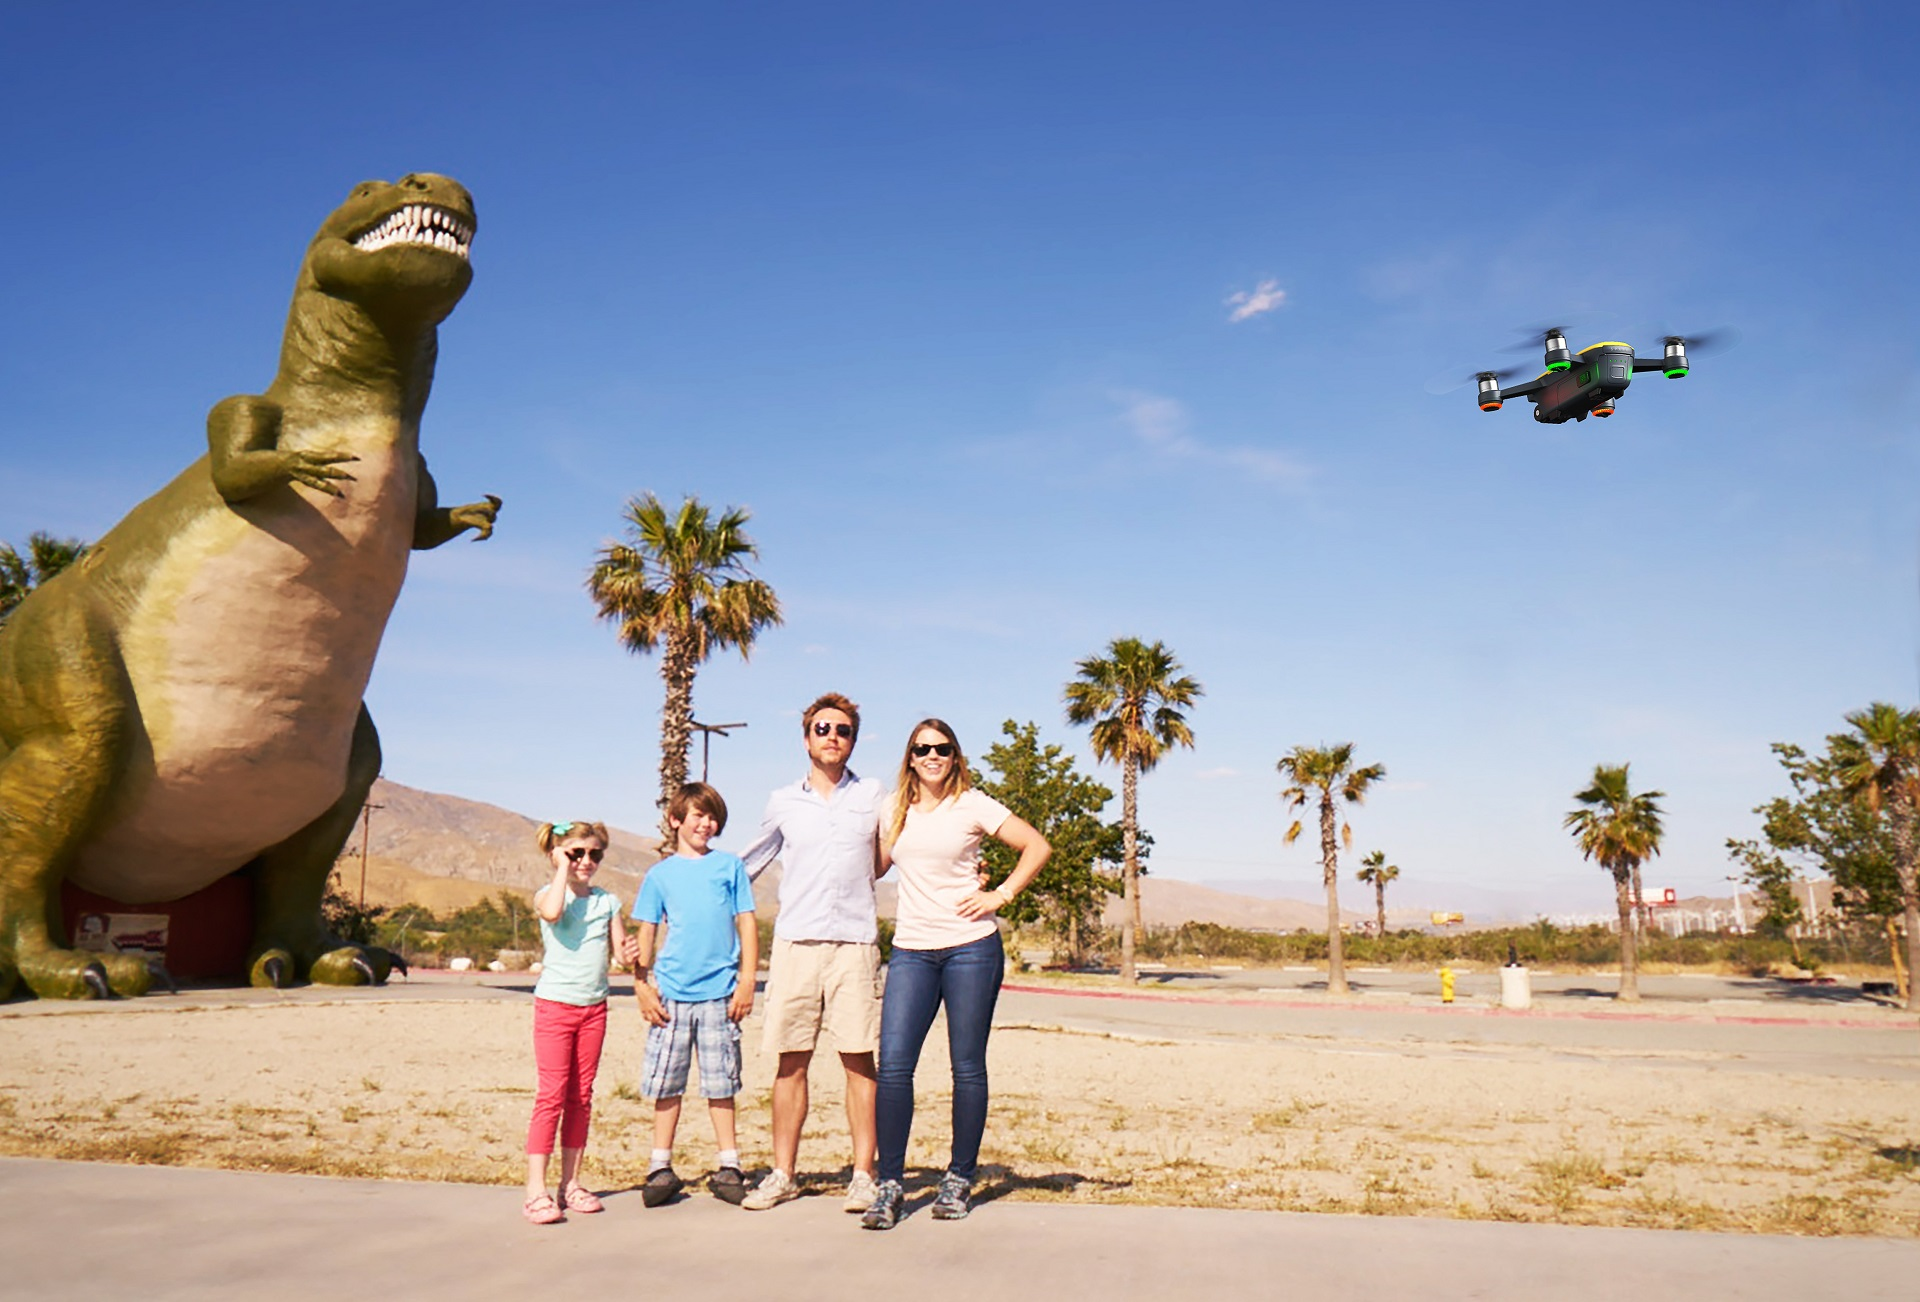 DJI Spark Photo DJI Launches Smaller, More Affordable Drone